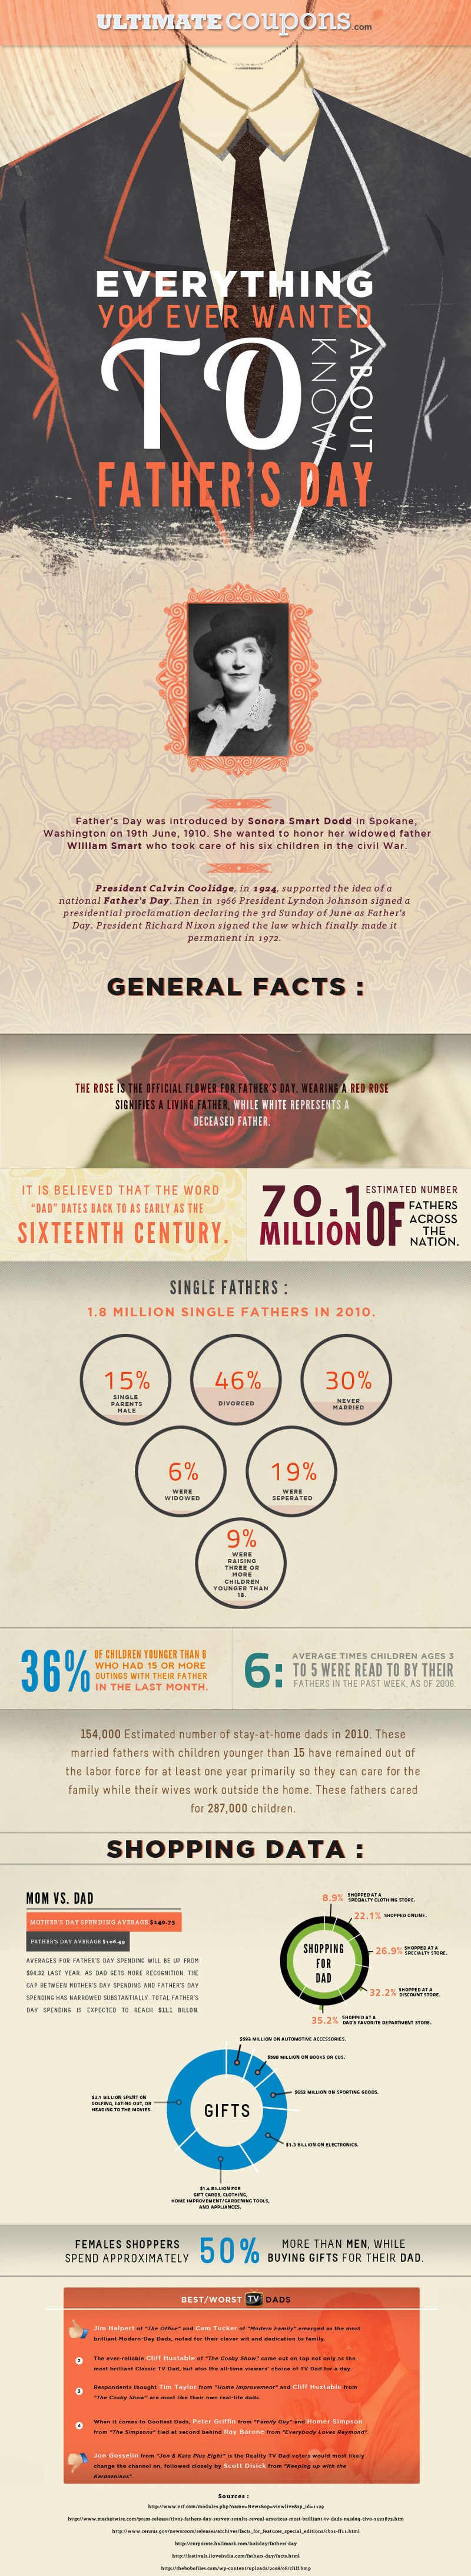 Interesting Facts About Fathers Day